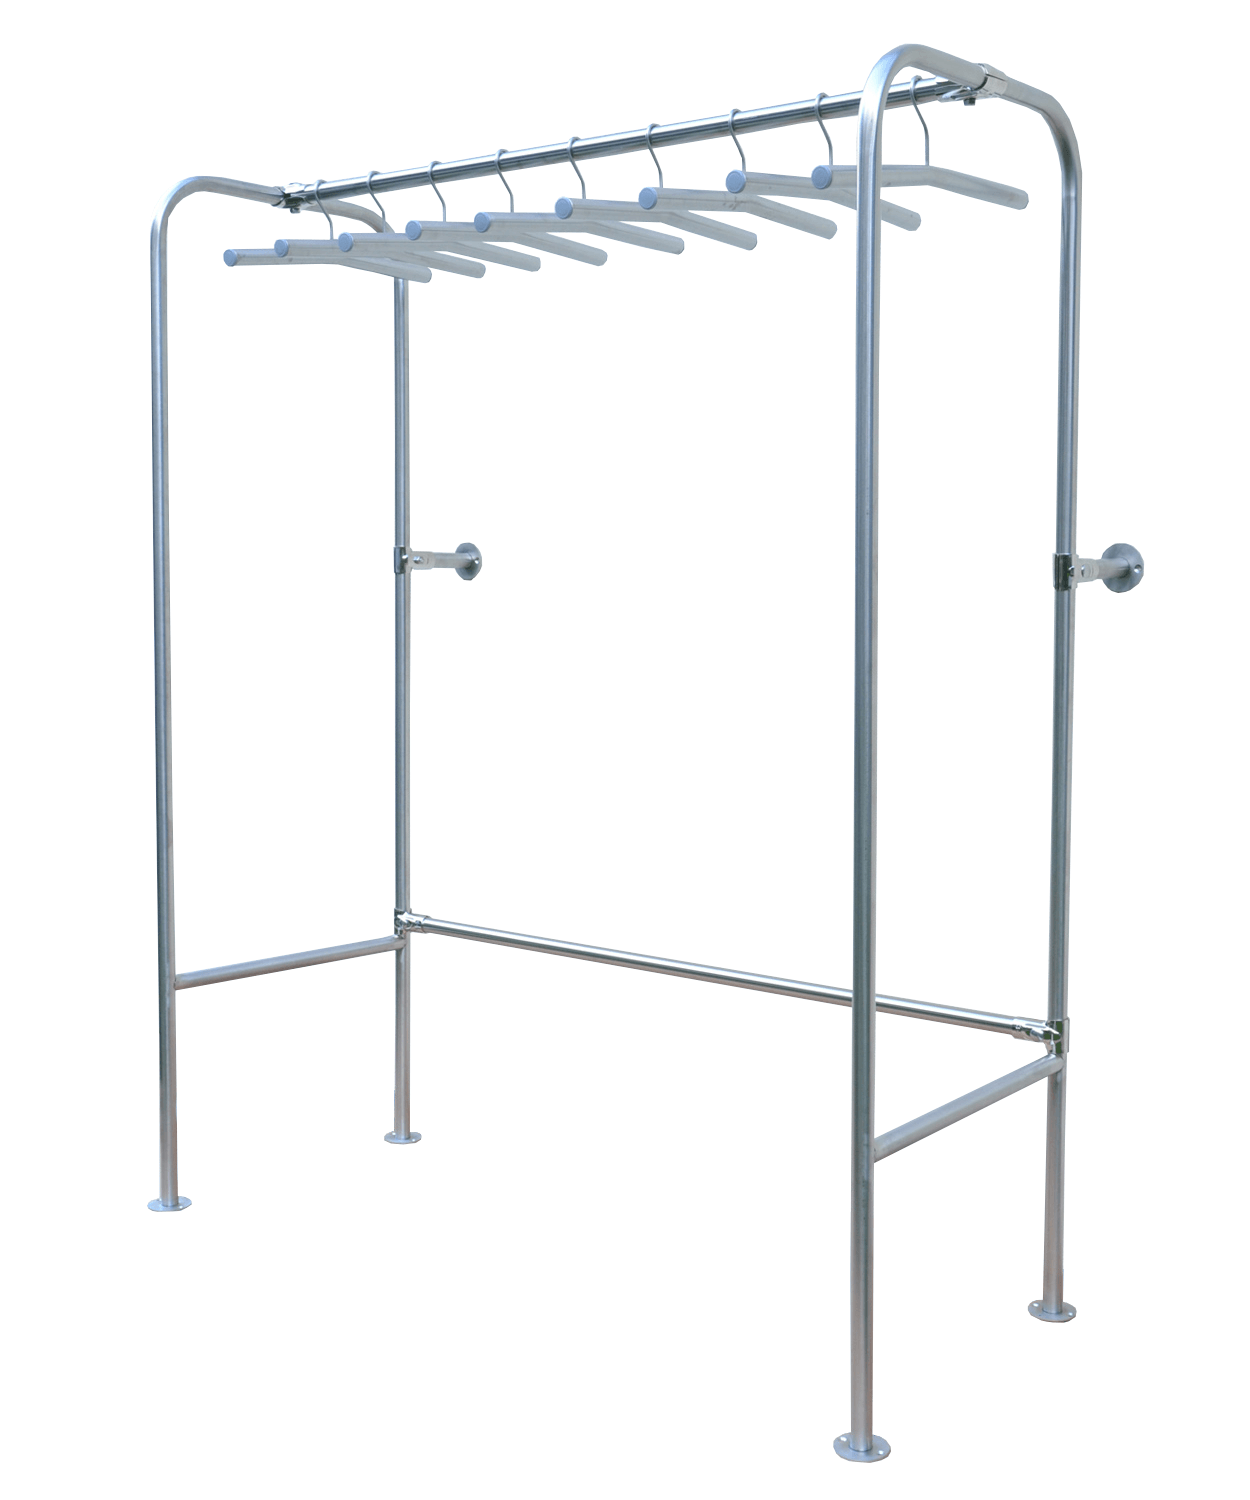 professional storage rack for jackets and suits